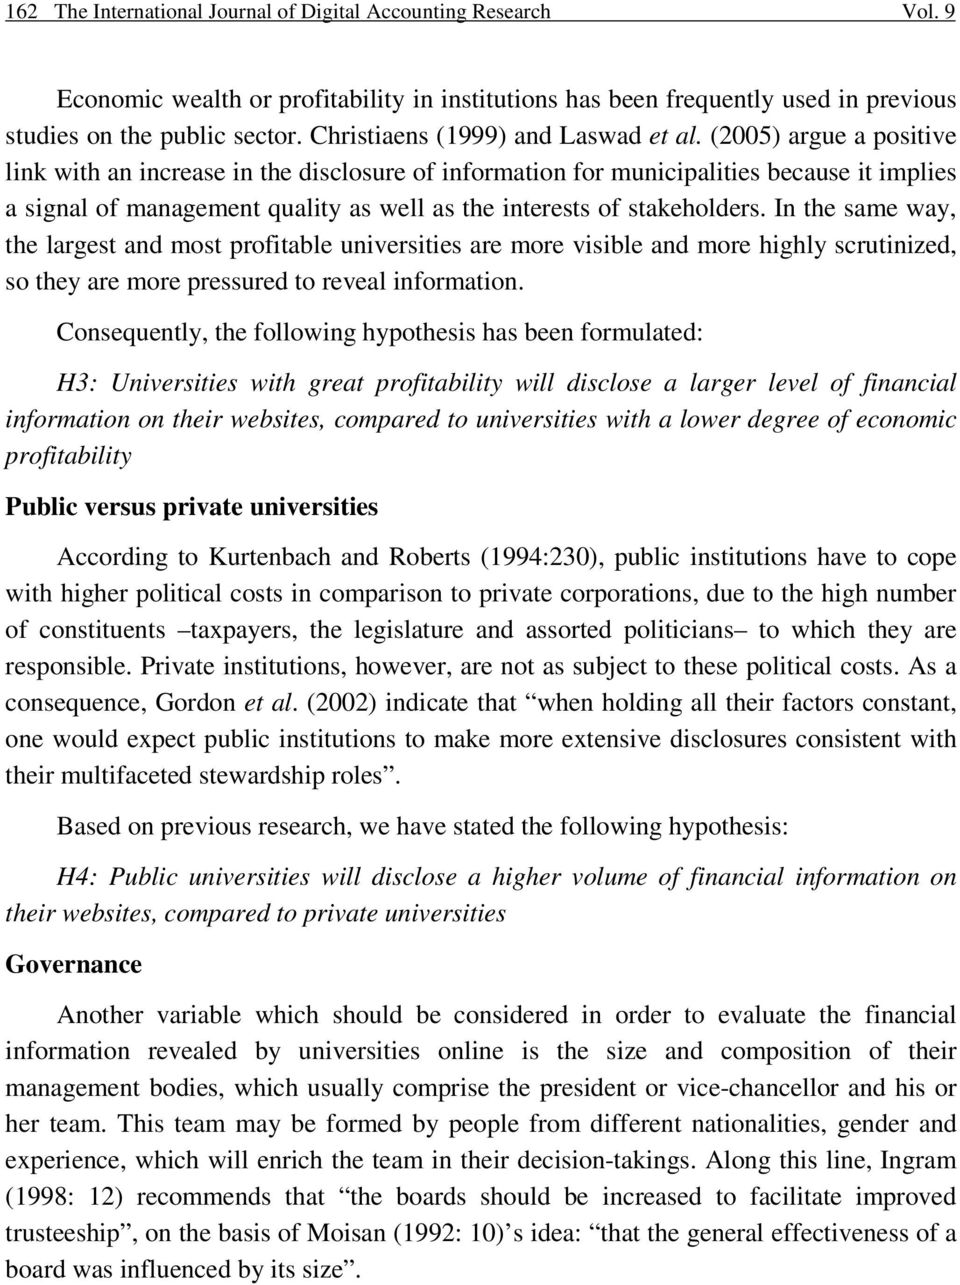 (2005) argue a positive link with an increase in the disclosure of information for municipalities because it implies a signal of management quality as well as the interests of stakeholders.